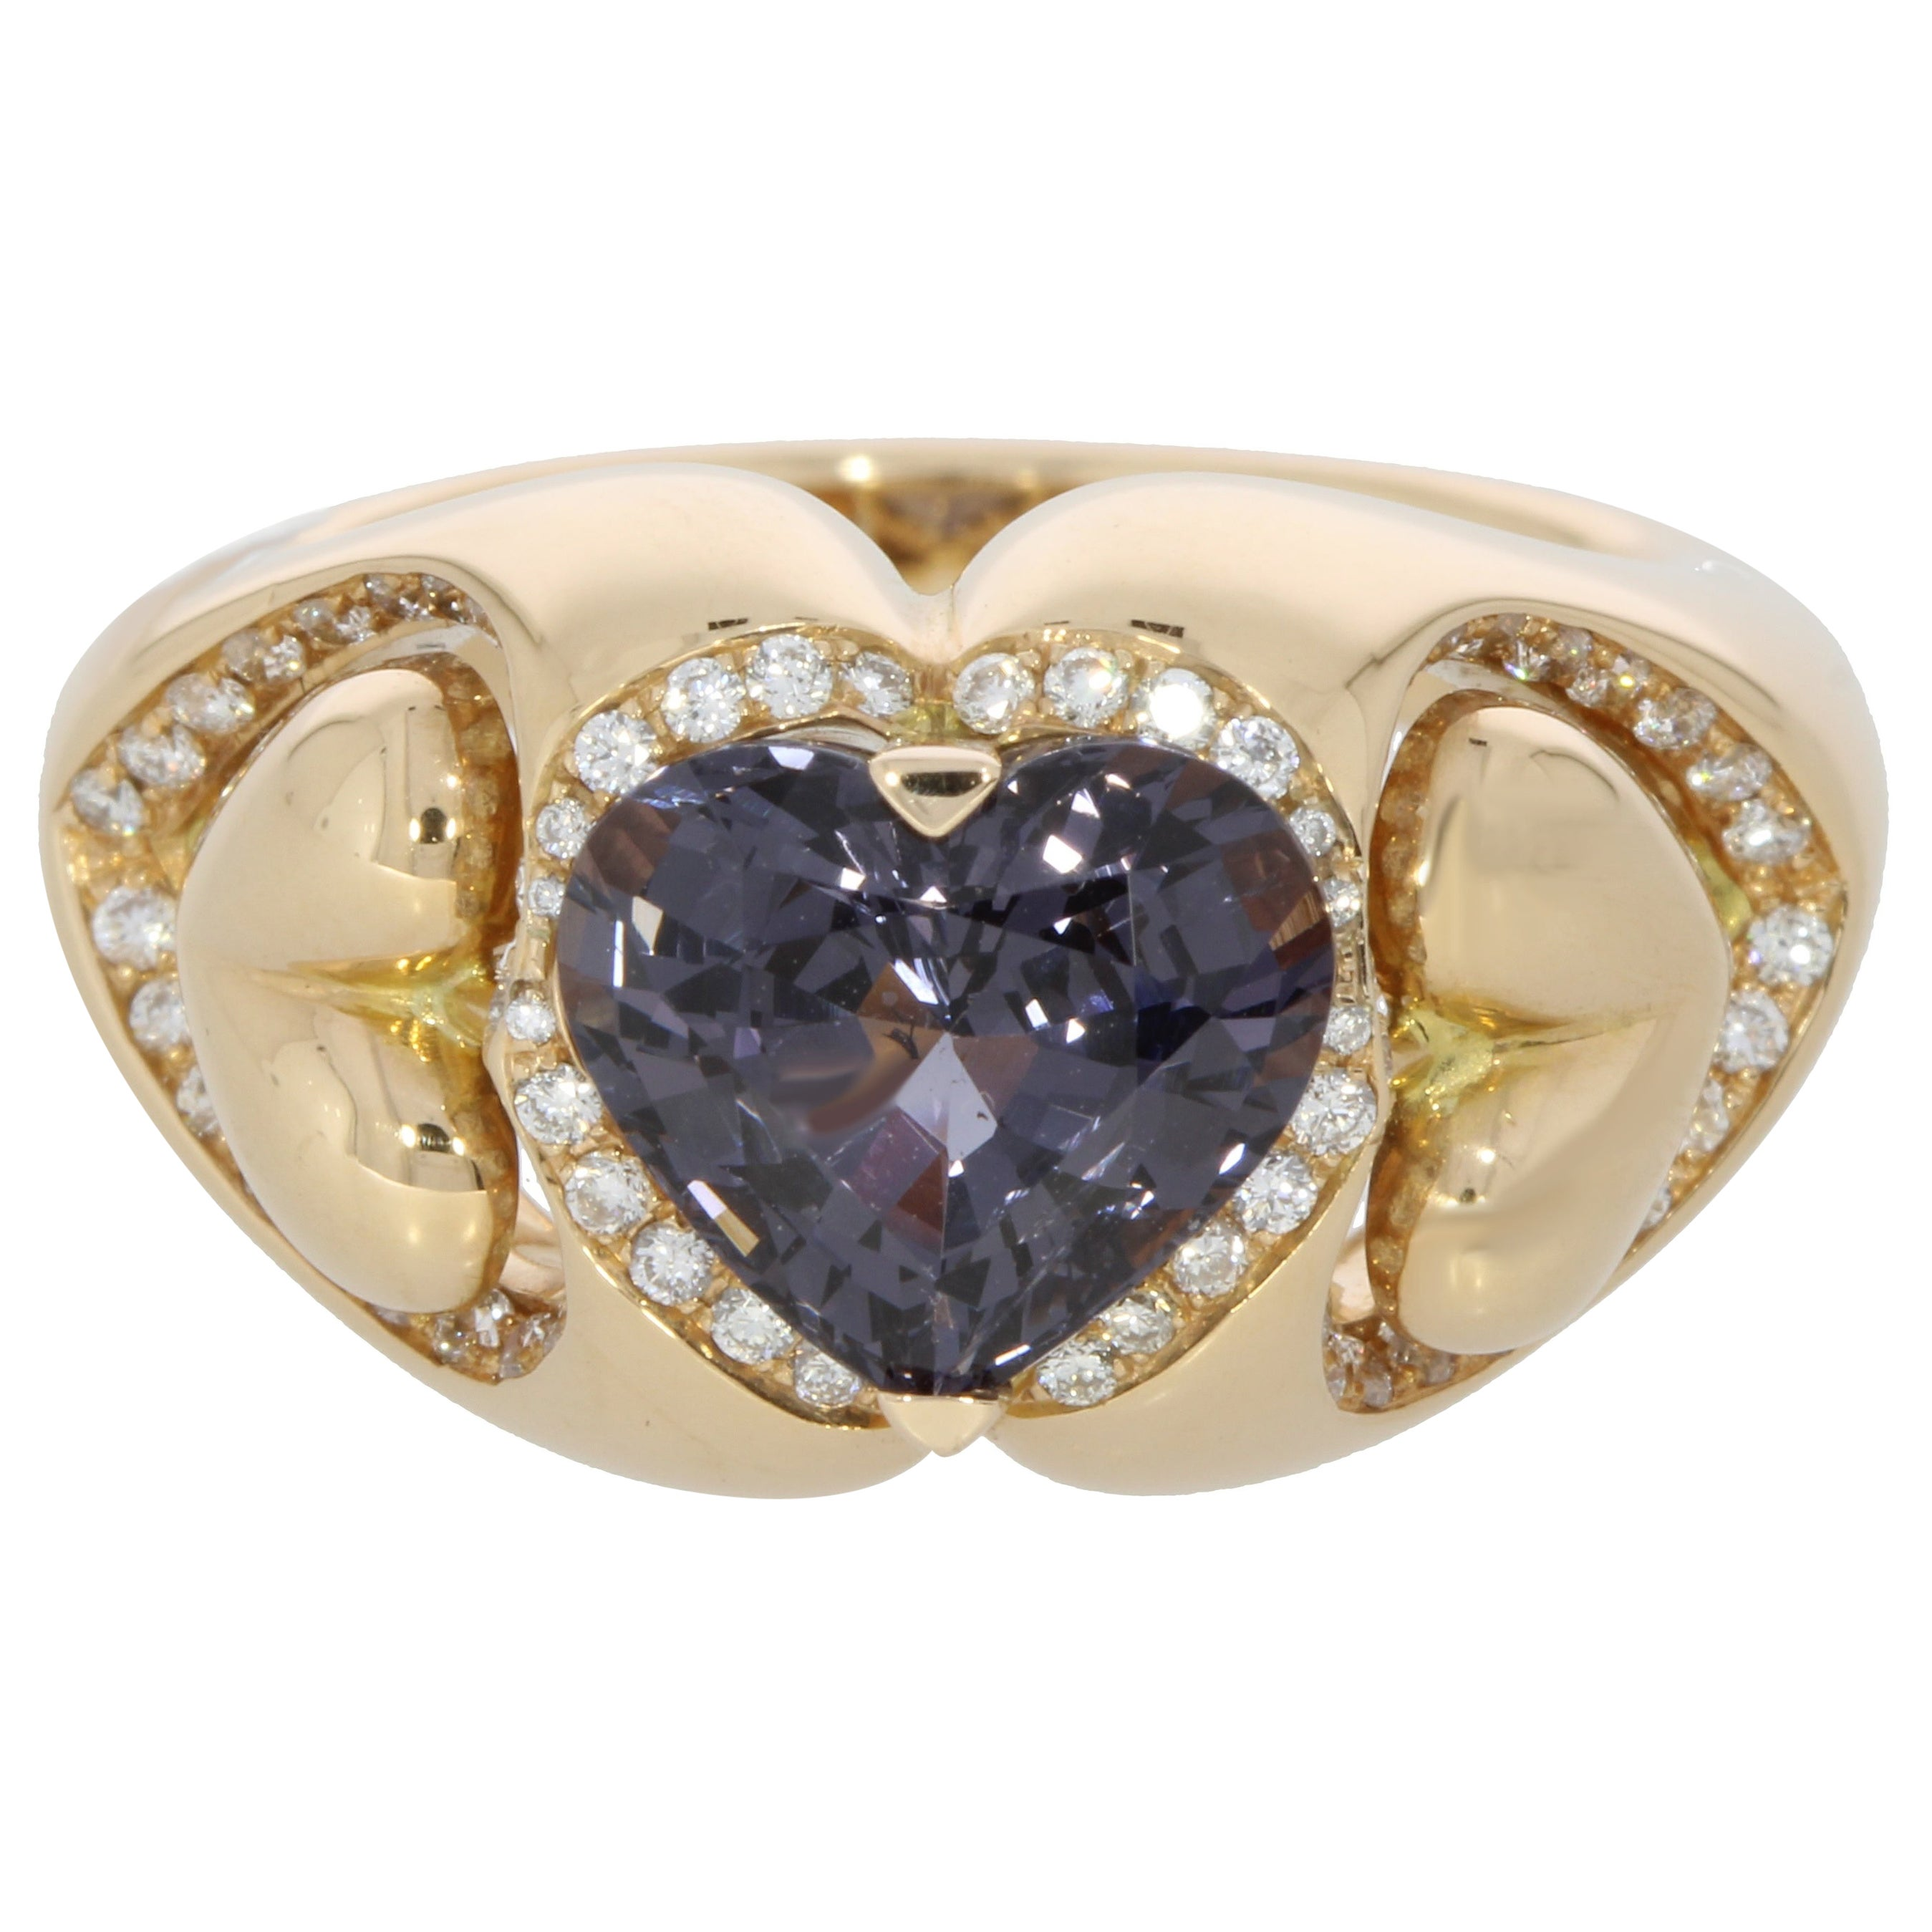 Purple Spinel and Diamond Heart Ring 18 Karat Collection by Niquesa